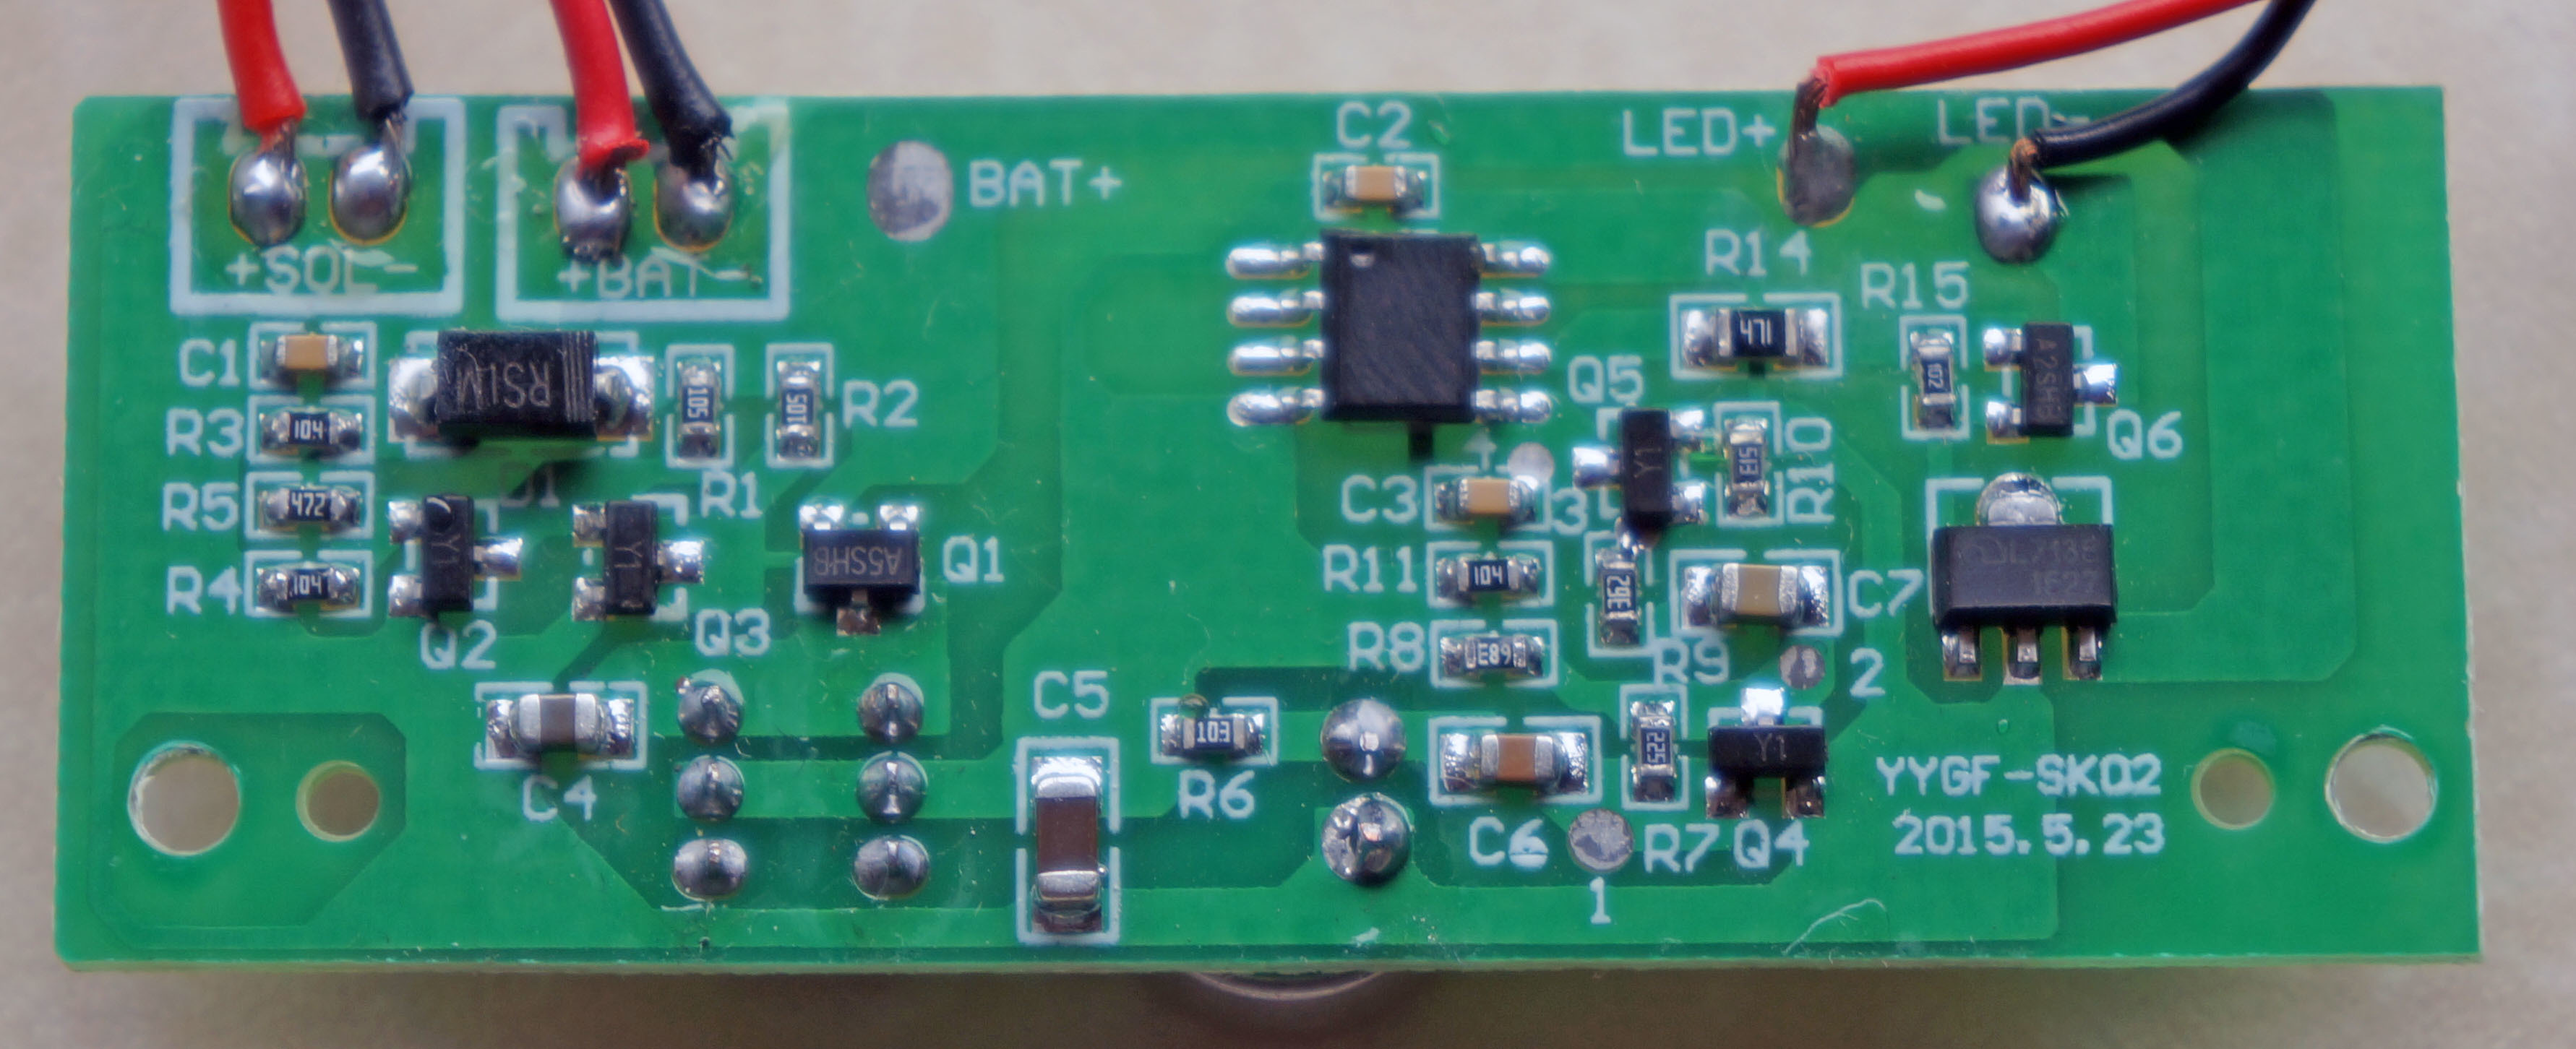 Solar Charger Controller Using Transistors also Automatic Battery Charger Circuit moreover Installation Guide moreover 2892 together with Portable Usb Charger Circuit. on solar panel battery charger circuit